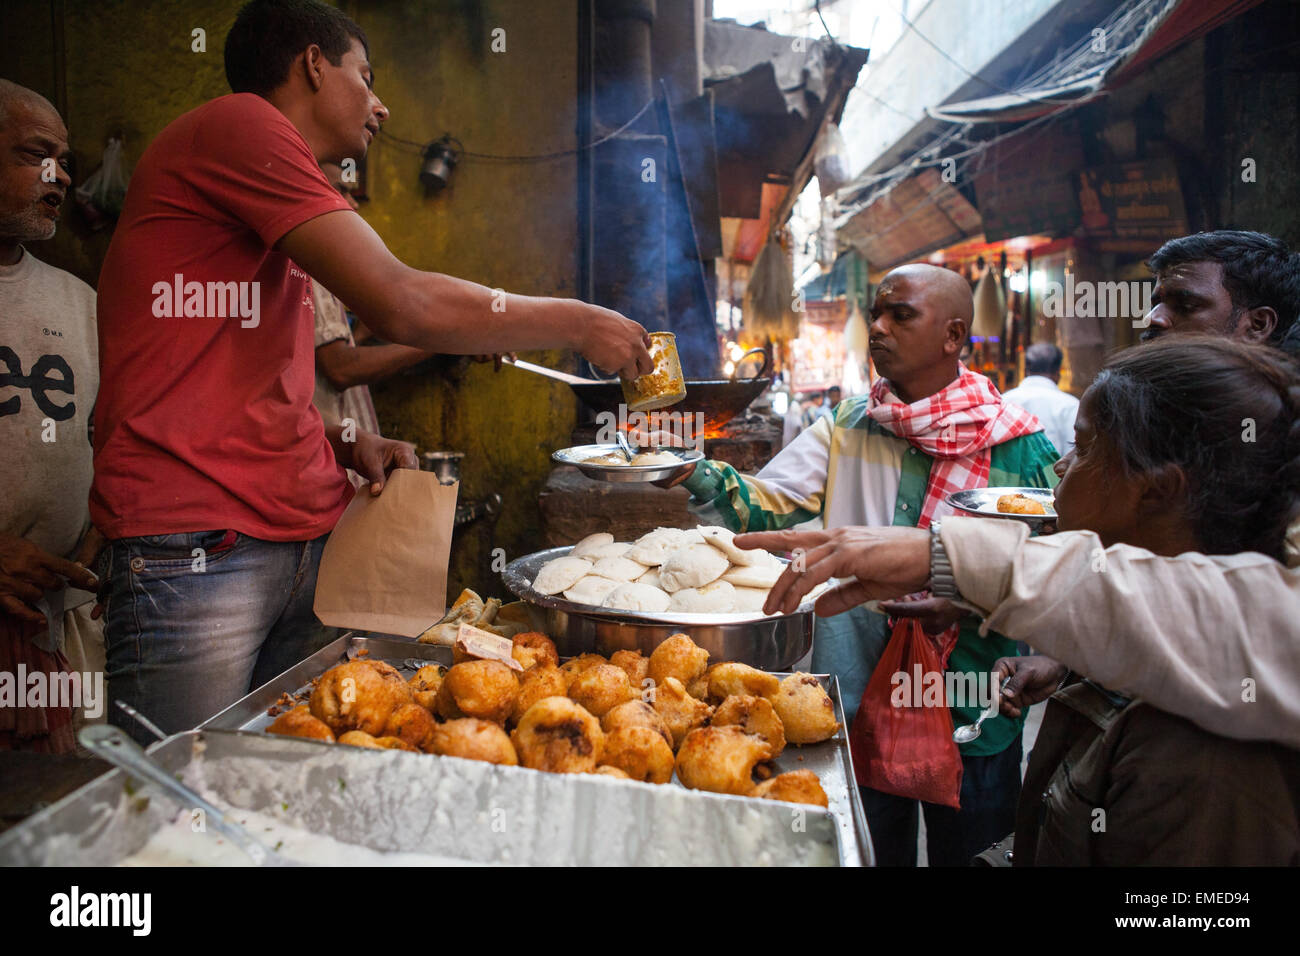 Food stall in the narrow lanes of the old city of Varanasi - Stock Image